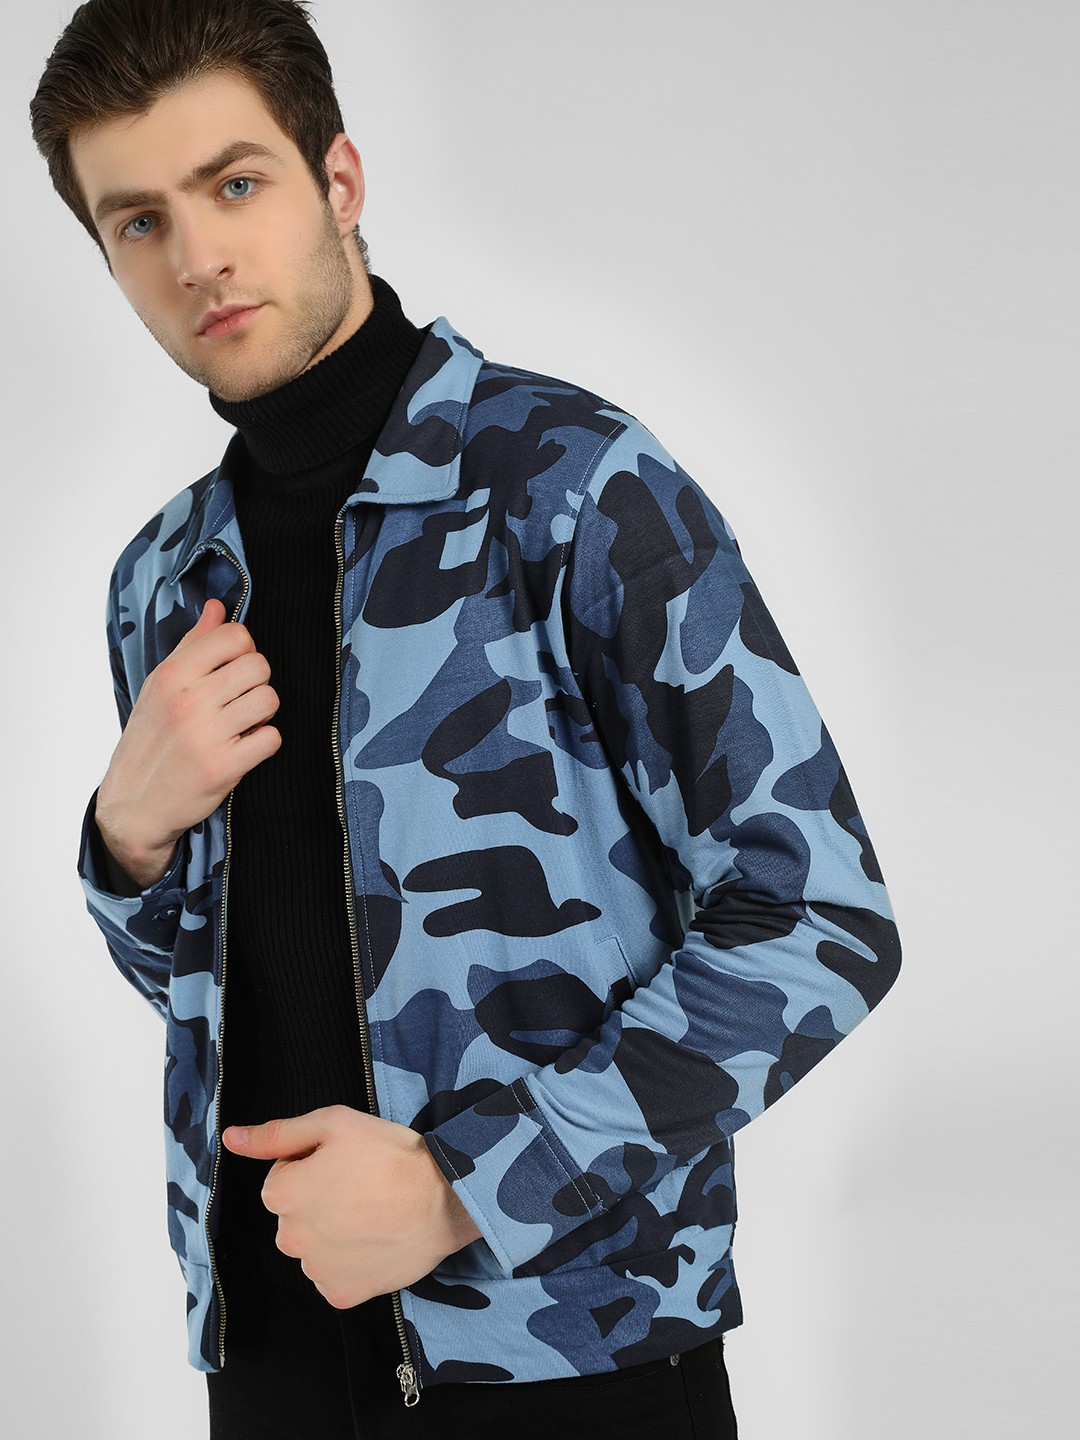 Garcon Blue Camo Print Collared Jacket 1